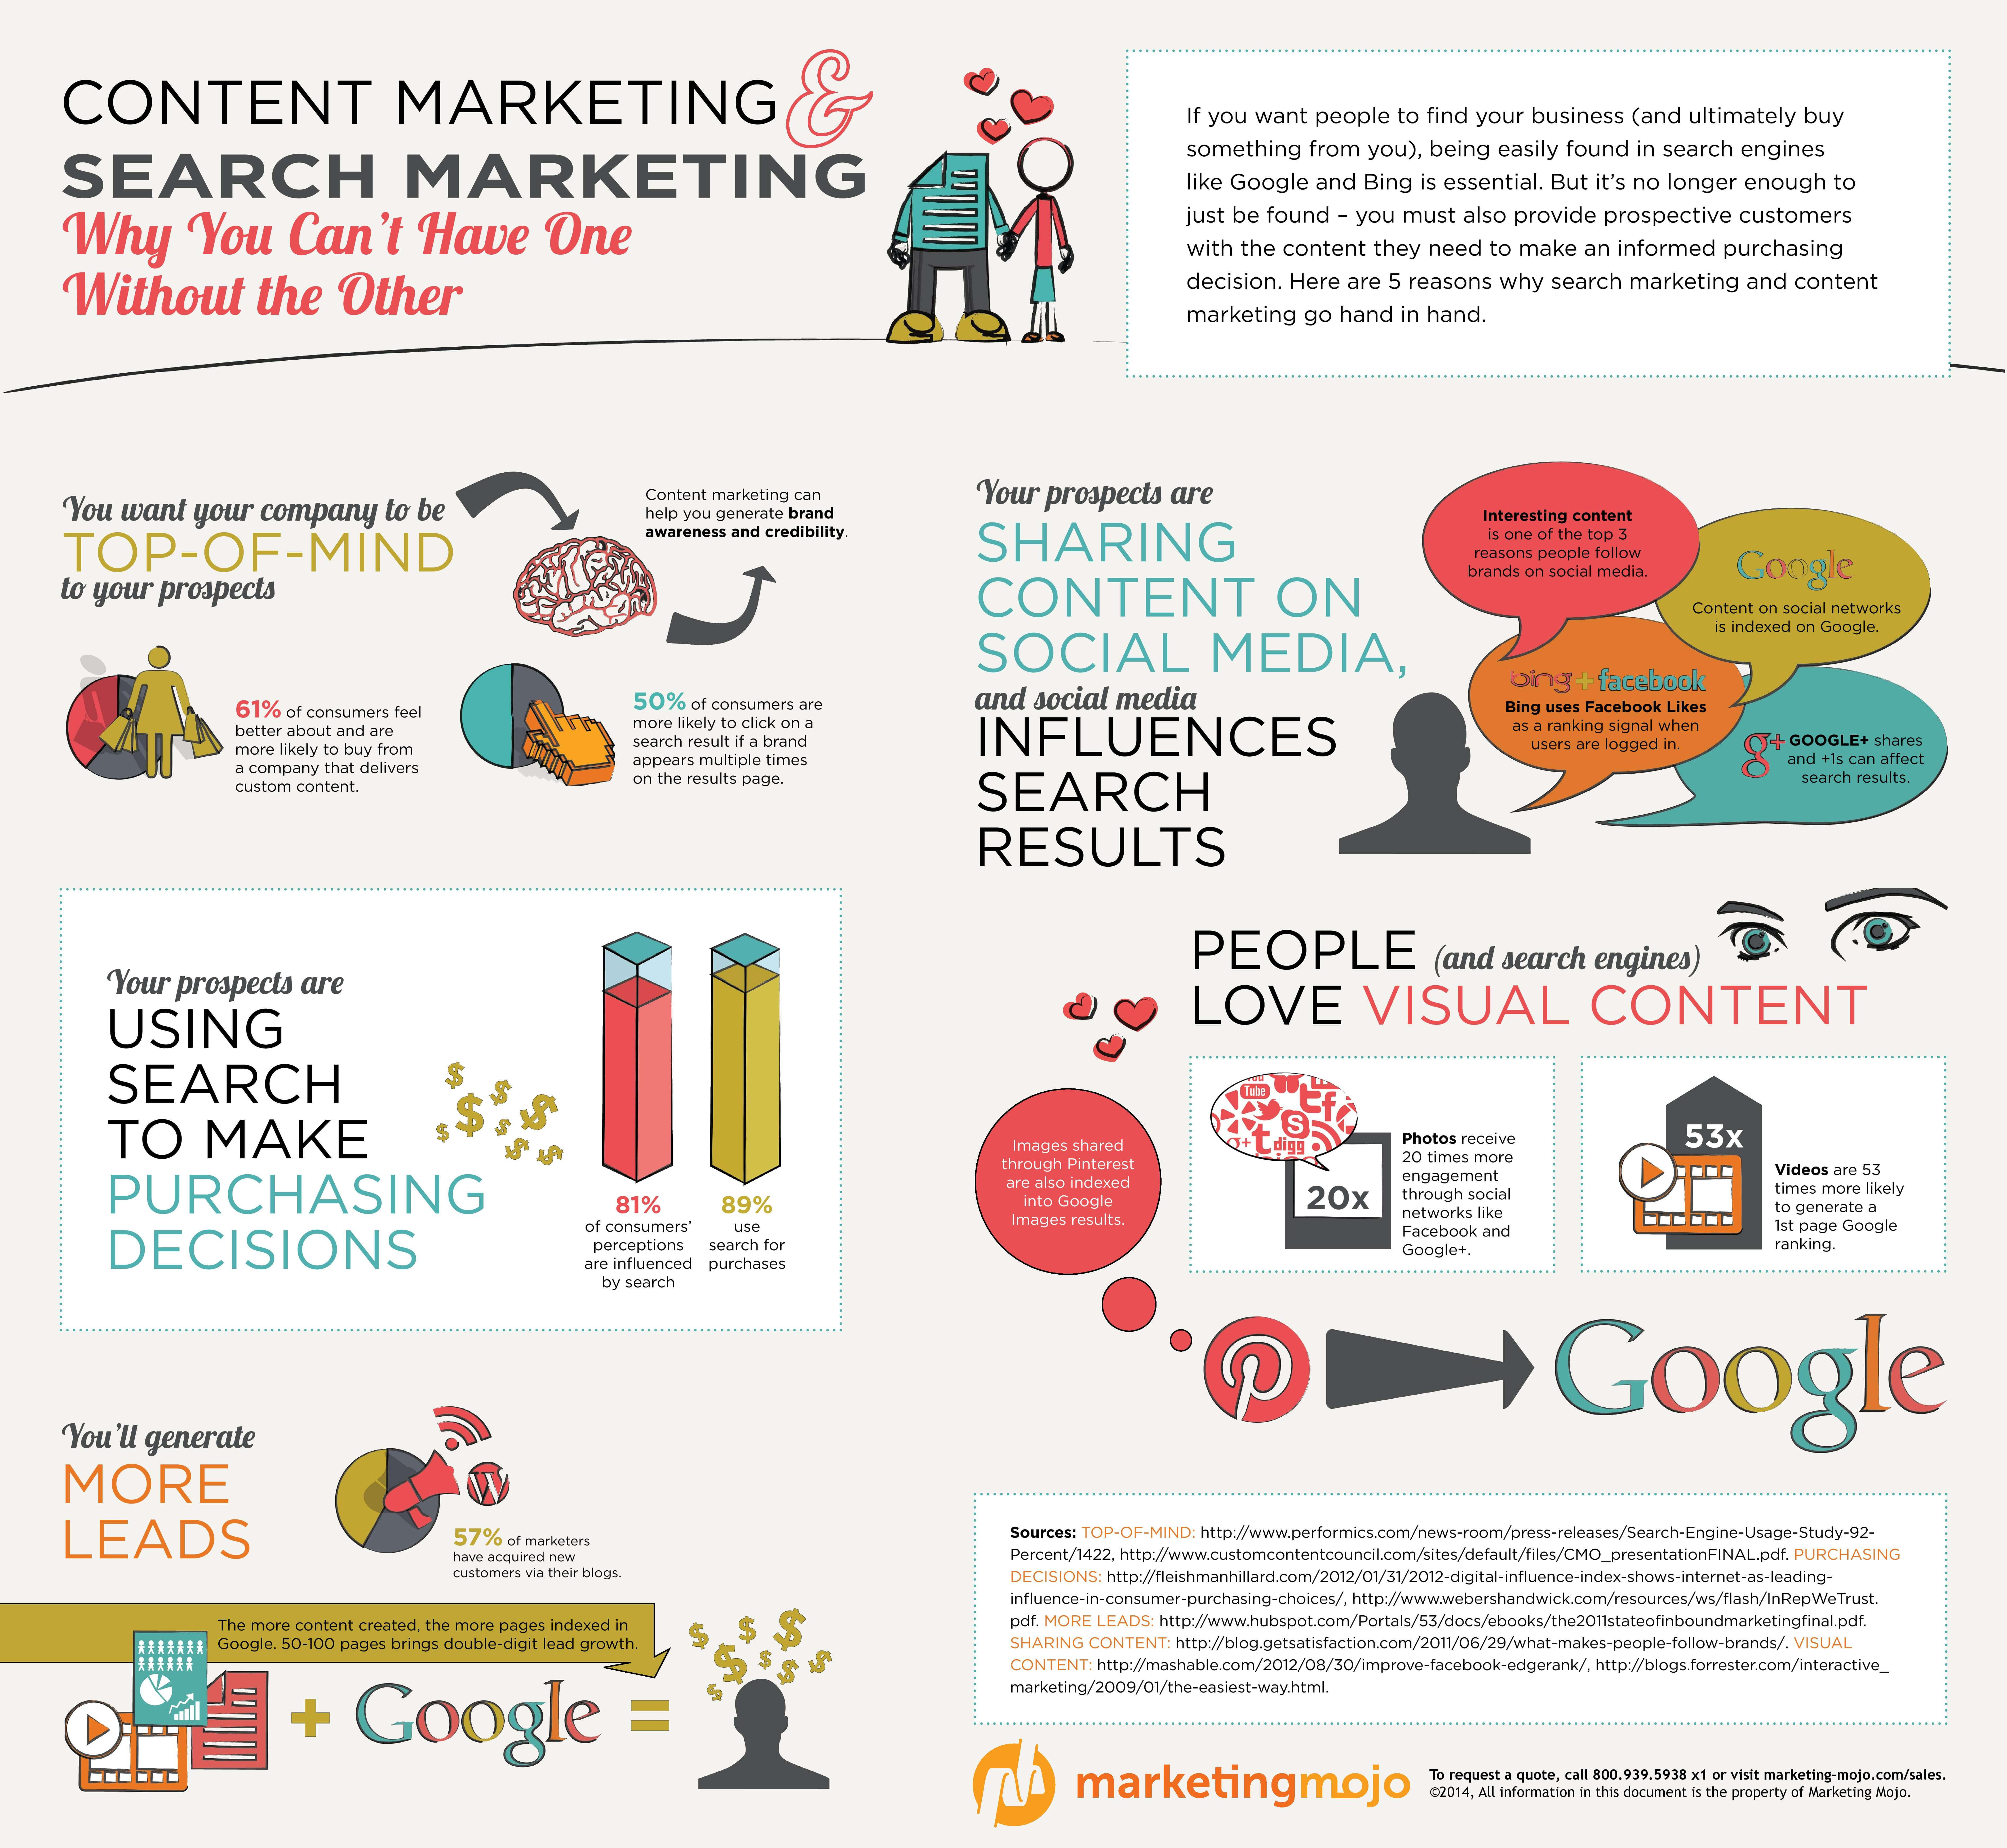 Marketing-Mojo_Content_Marketing_Infographic-page-001.jpg